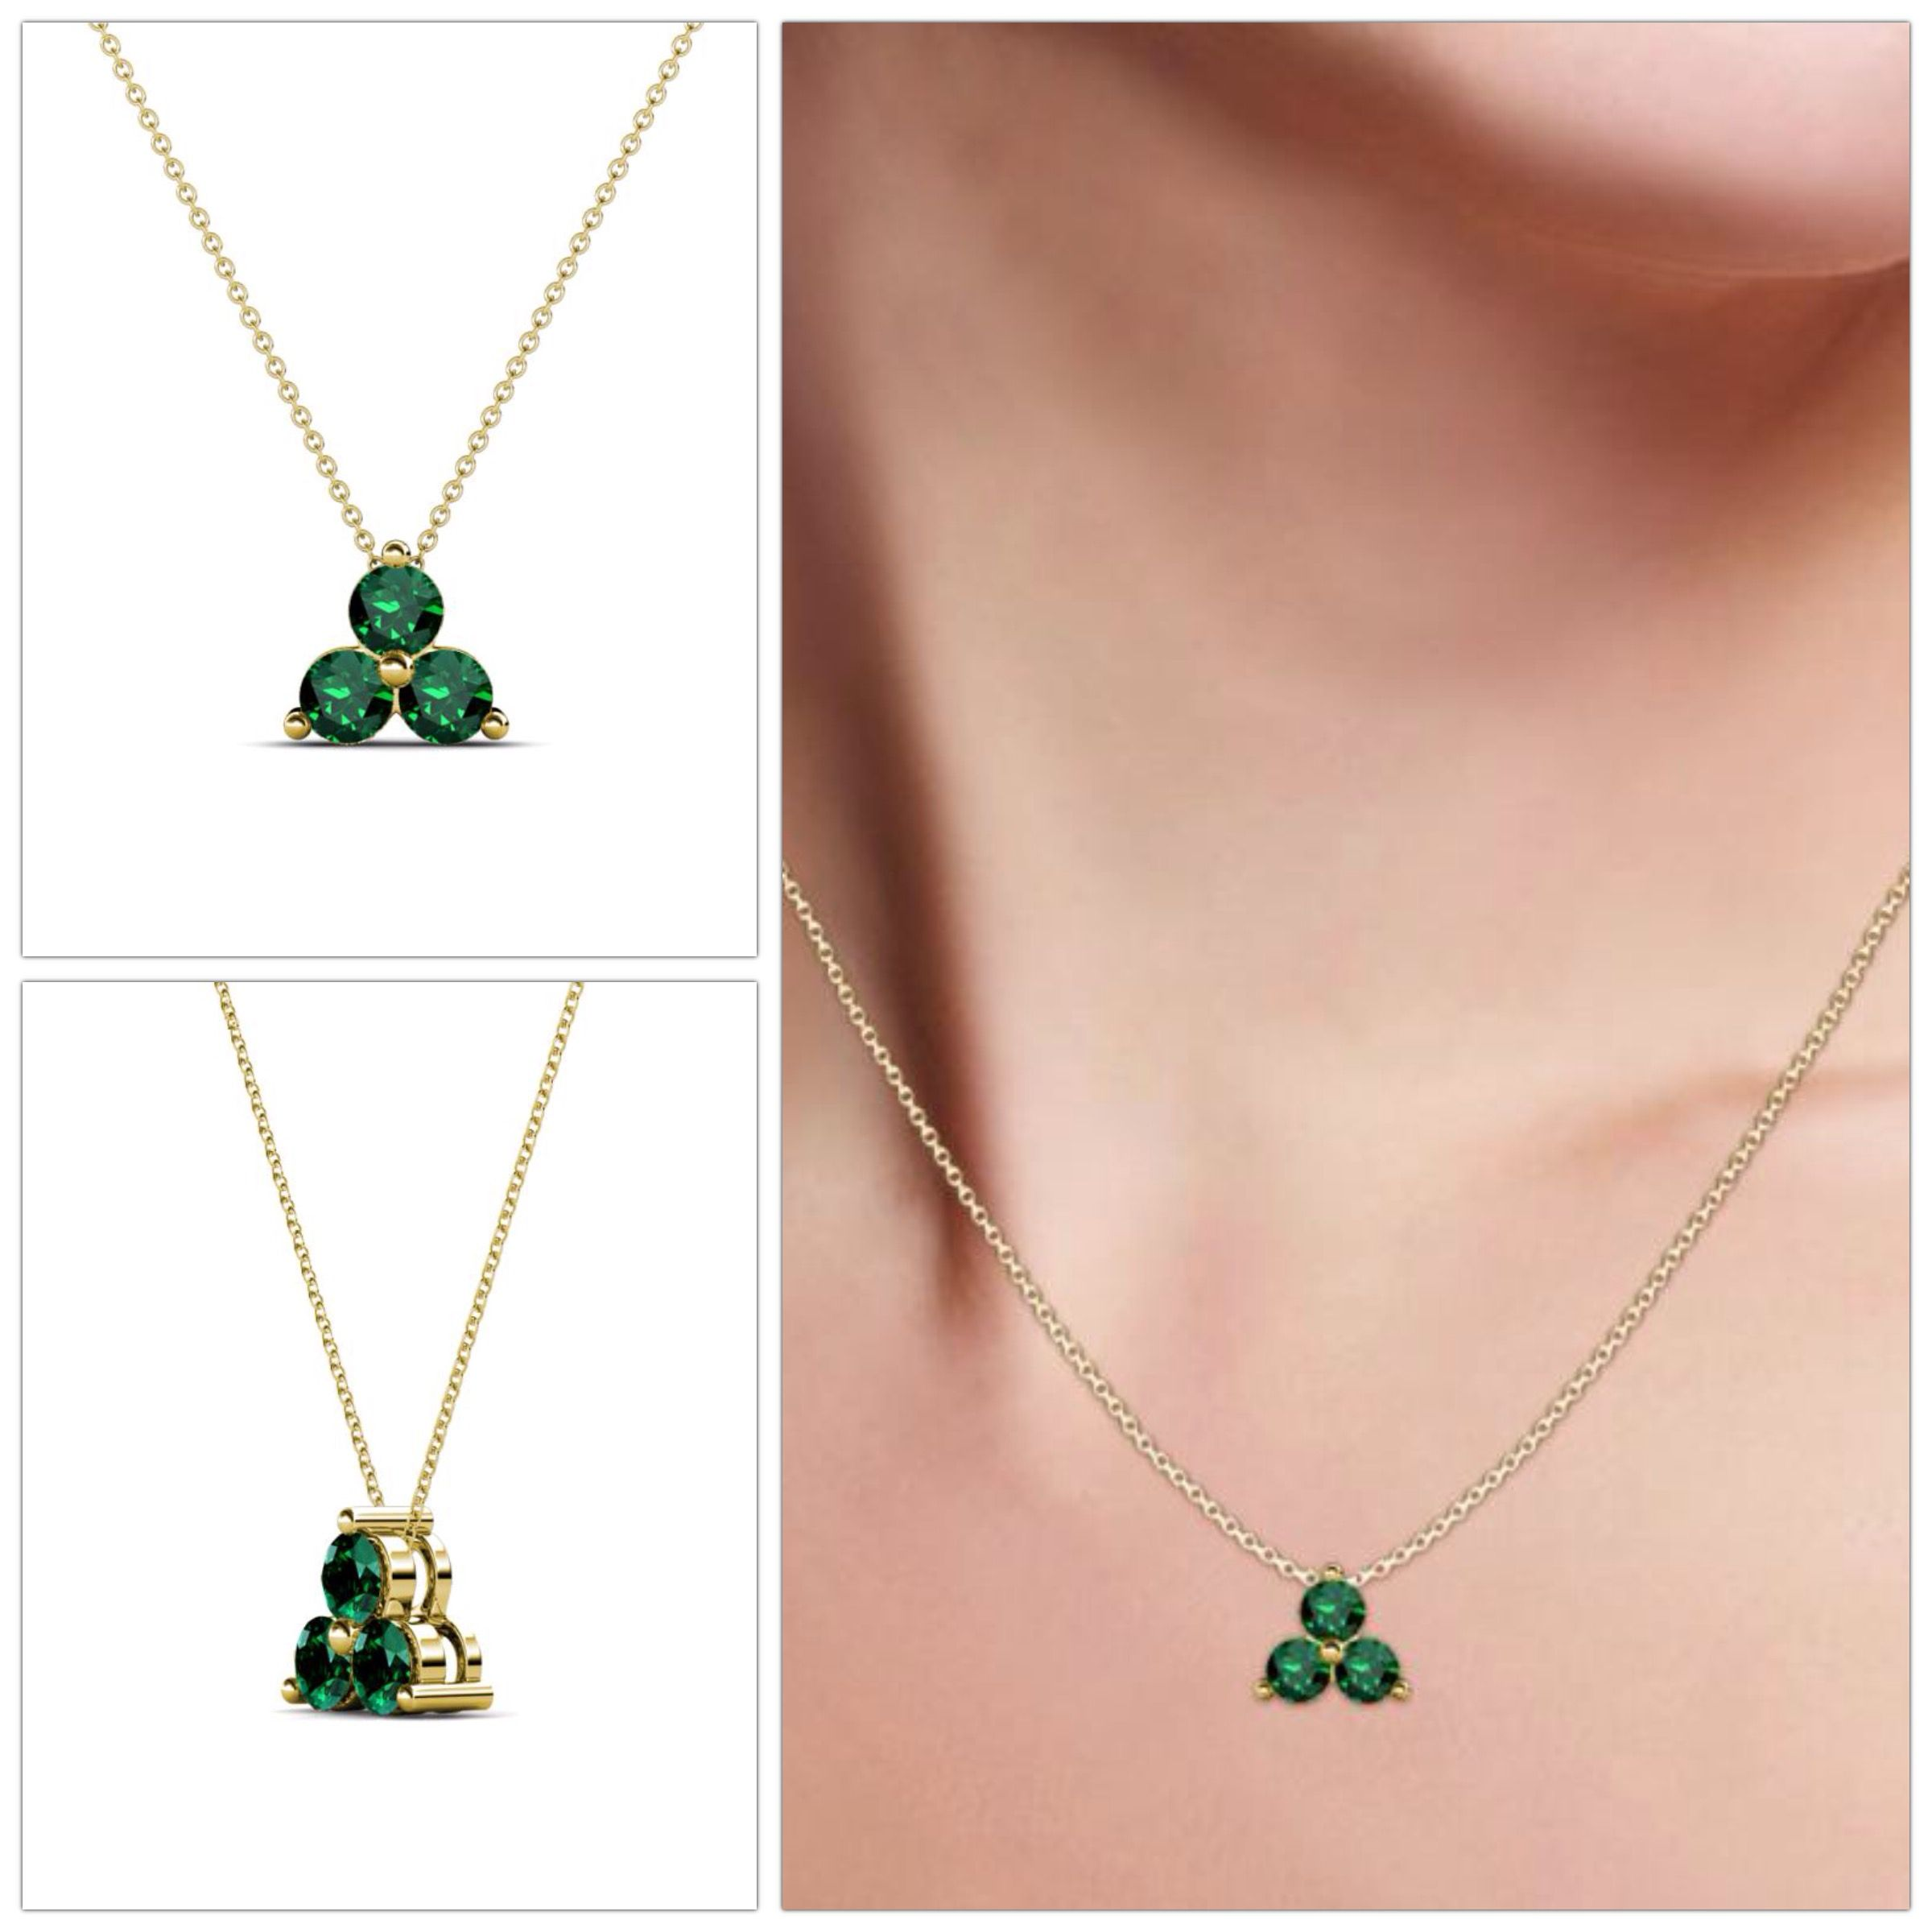 j solitaire bezel natural pendant il colombian r necklace gold product jewels set emerald cts stone birthstone fullxfull may